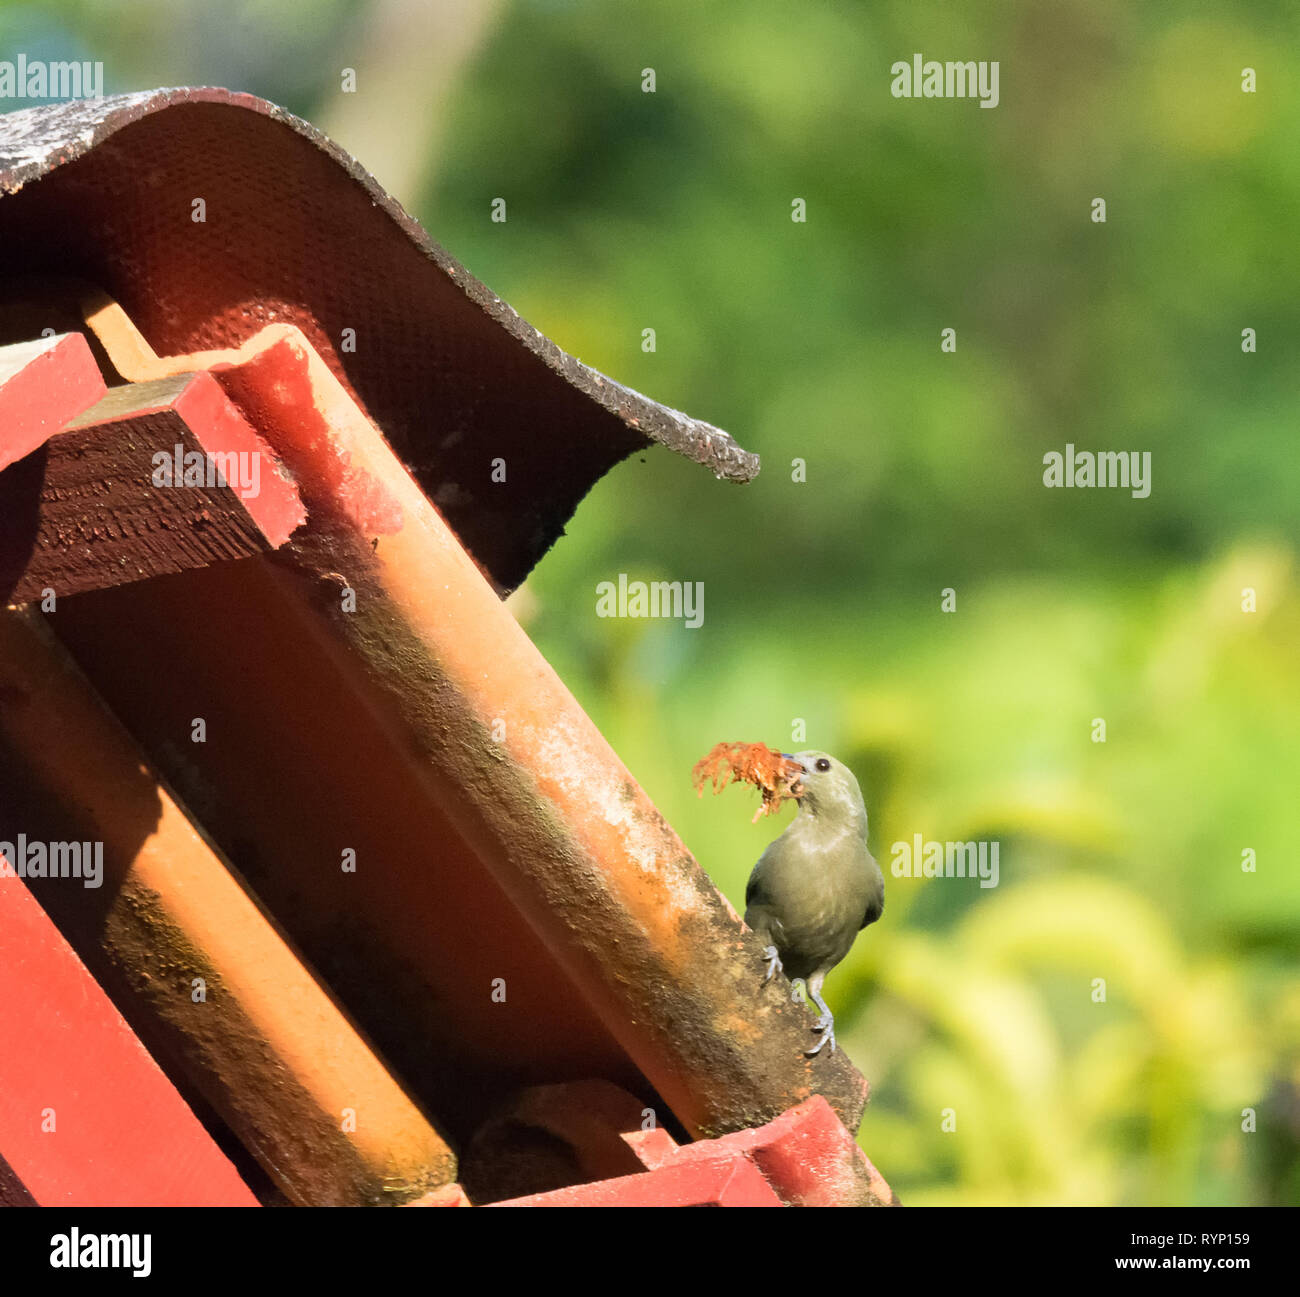 Carrrying nesting material a Palm Tanager pauses on a roof tile before heading to the next - Stock Image